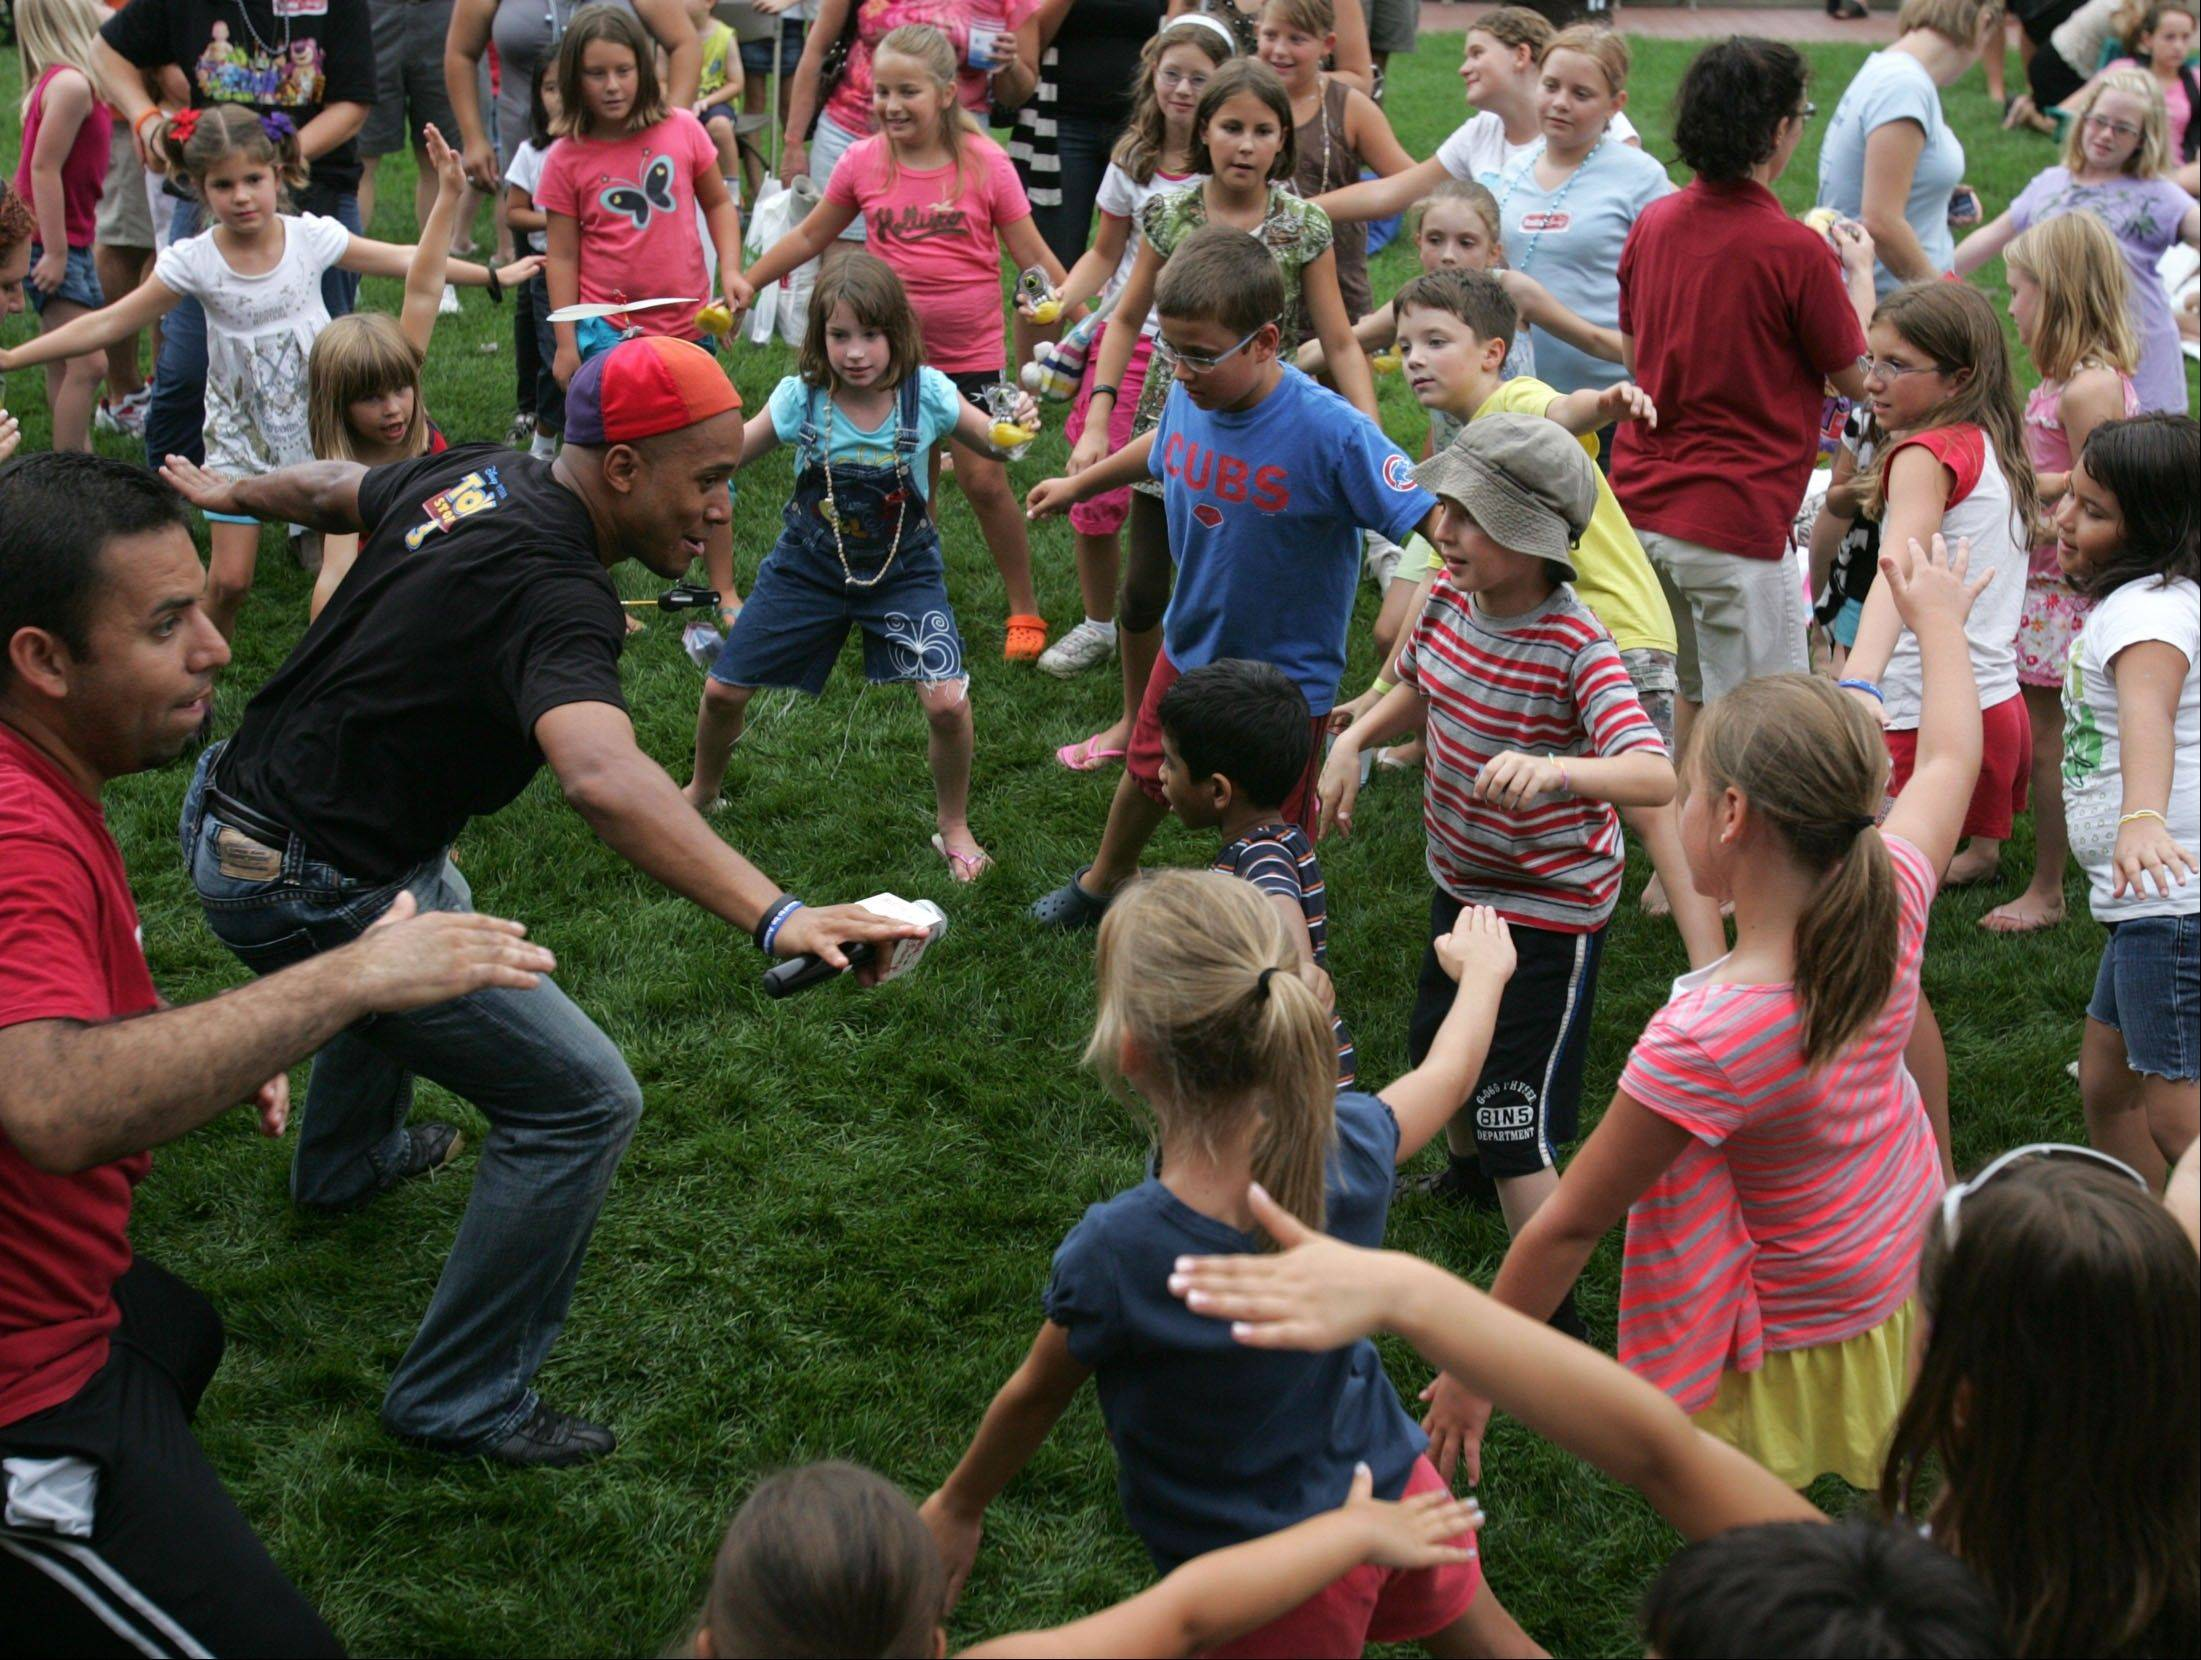 About 100 kids join in dancing at the 2010 Downtown Block Party, sponsored by the Mount Prospect Chamber of Commerce.